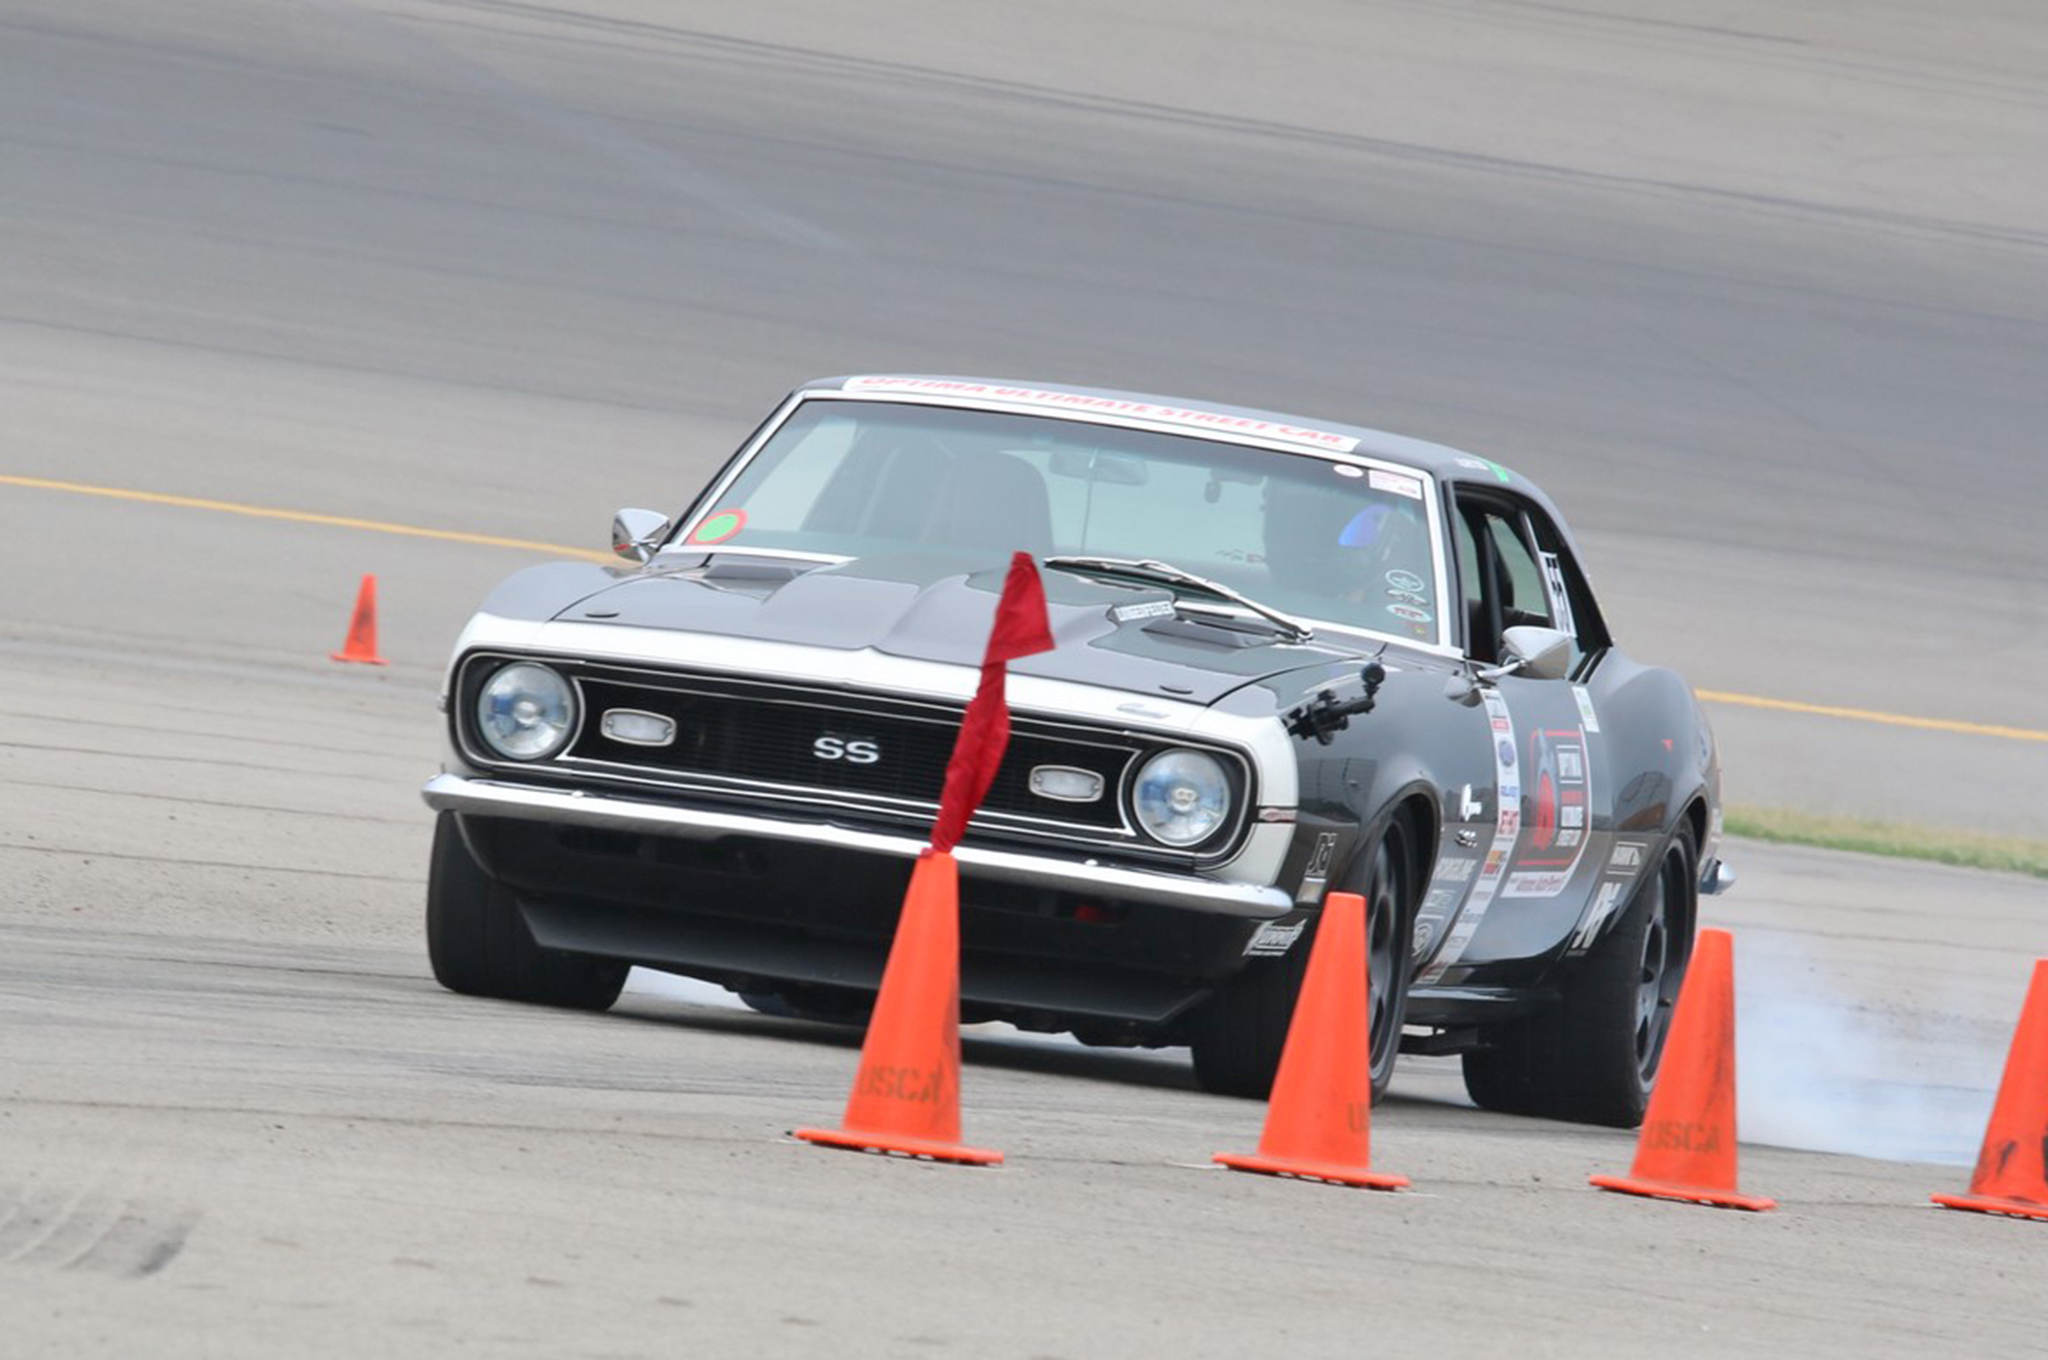 Larry Woo's 1968 Camaro is a regular competitor in this series and even though he missed the podium with a Fourth Place finish in the GTV class (1989-and-older RWD vehicles weighing at least 3,200 pounds), he still snagged enough points to move into the overall GTV points lead for the season.